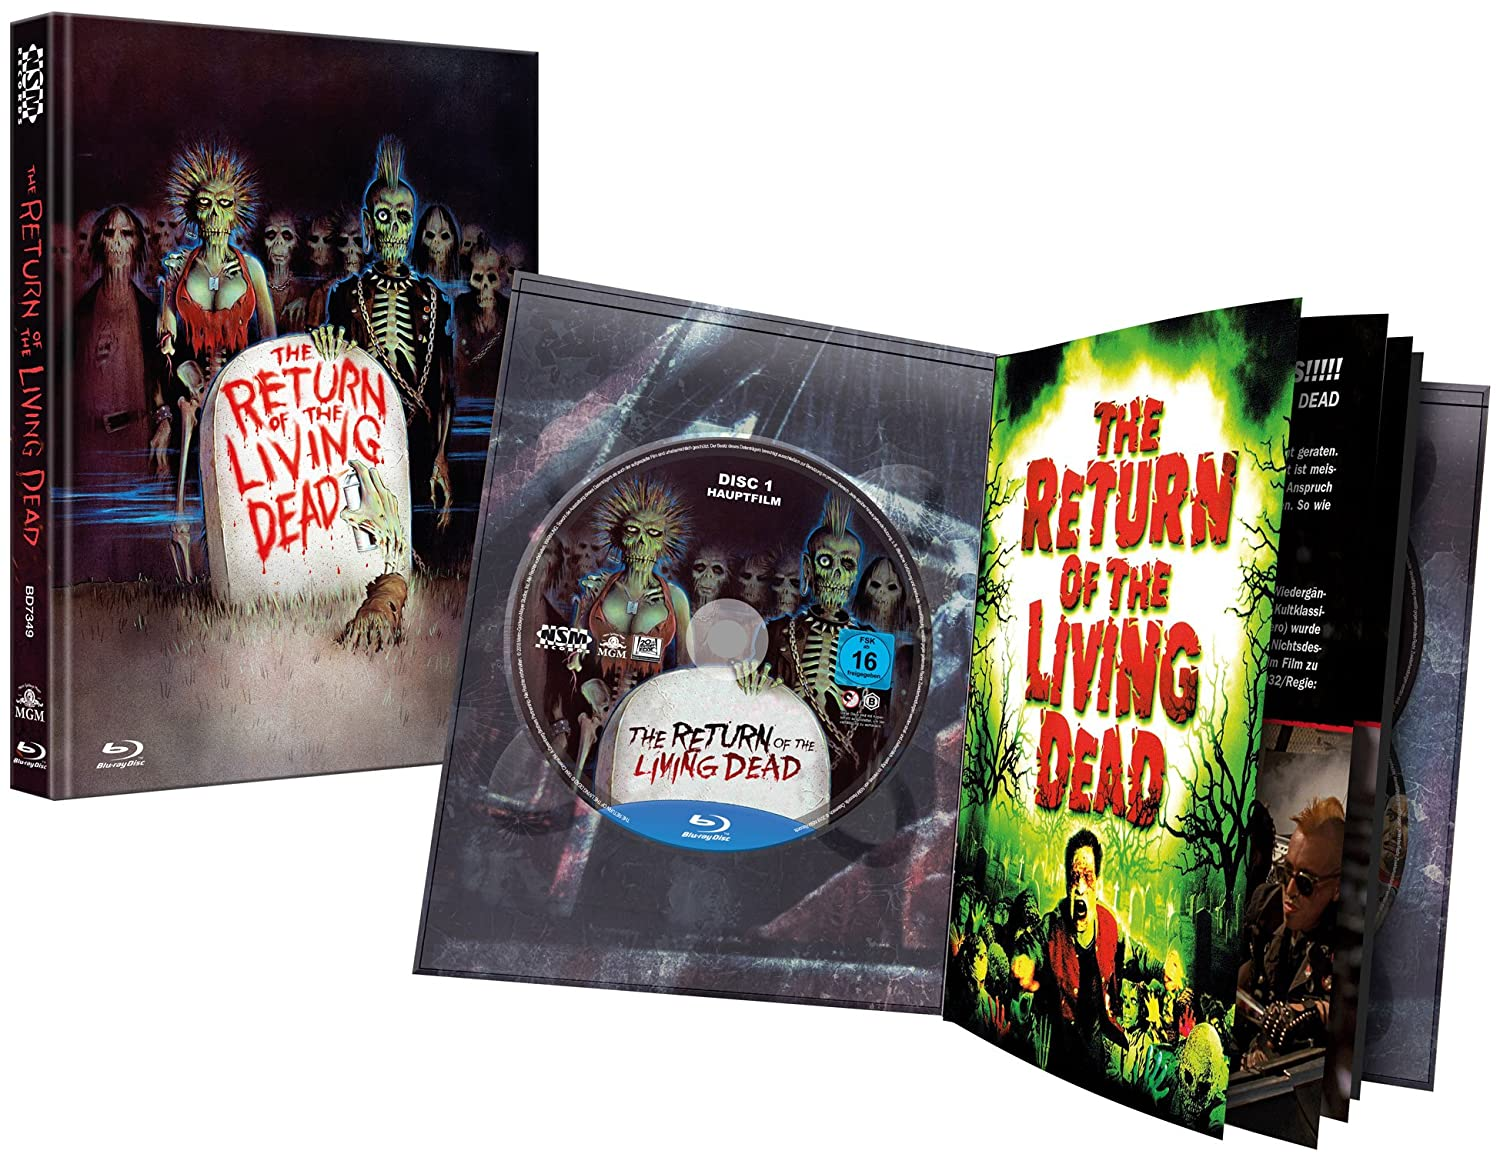 AT - Return of the Living Dead (Ultimate Edition) (Mediabook) - Blu-ray  Forum